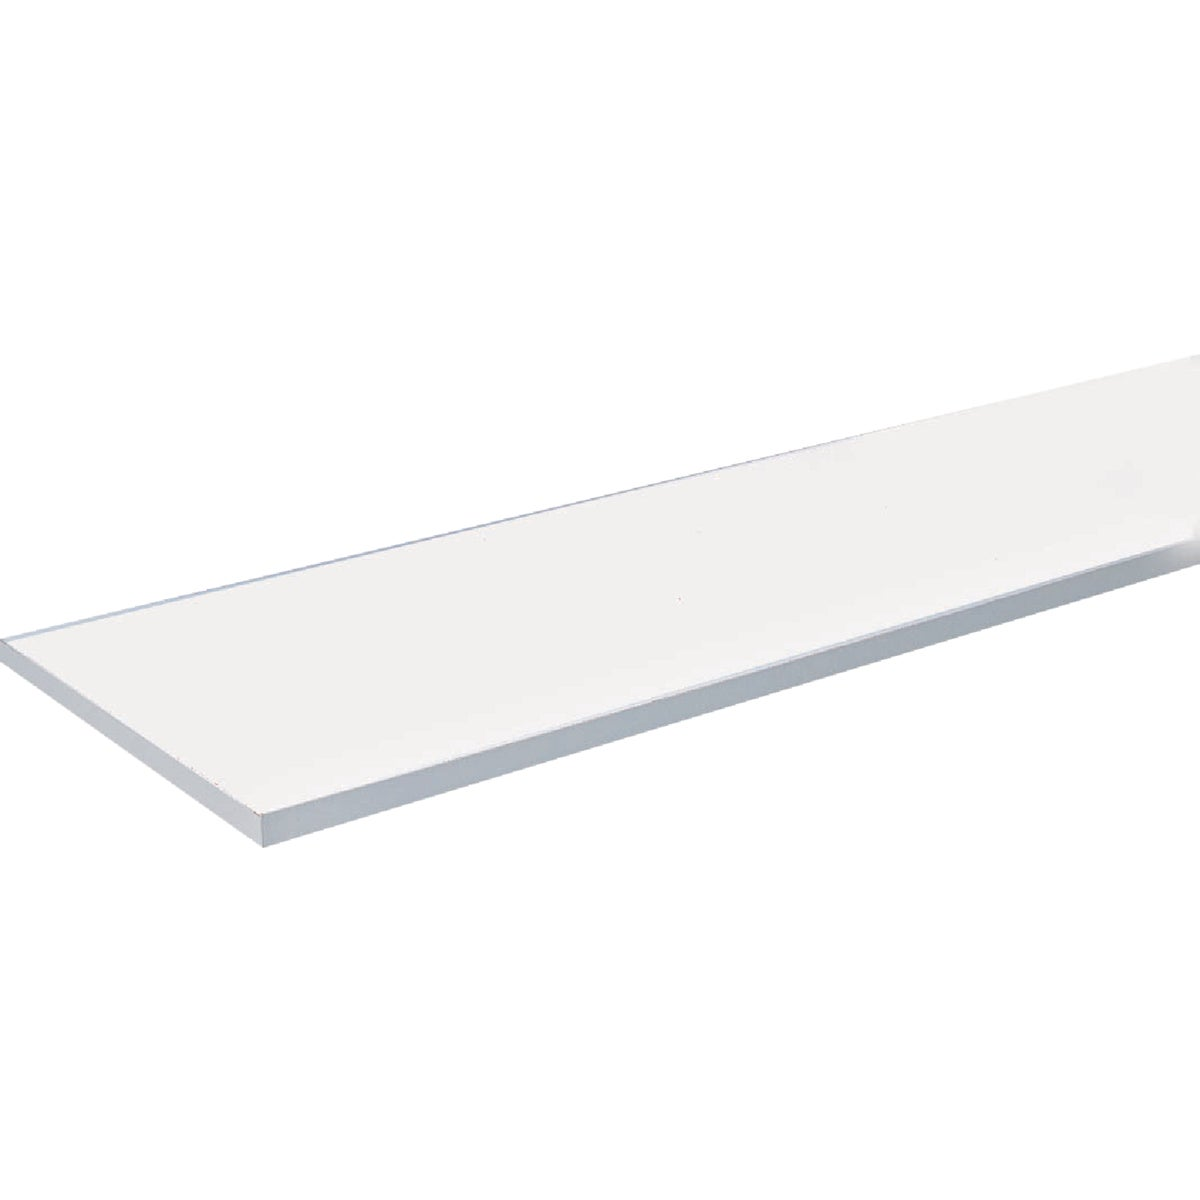 12X36 WHITE SHELF - 1980WH by Knape & Vogt Mfg Co